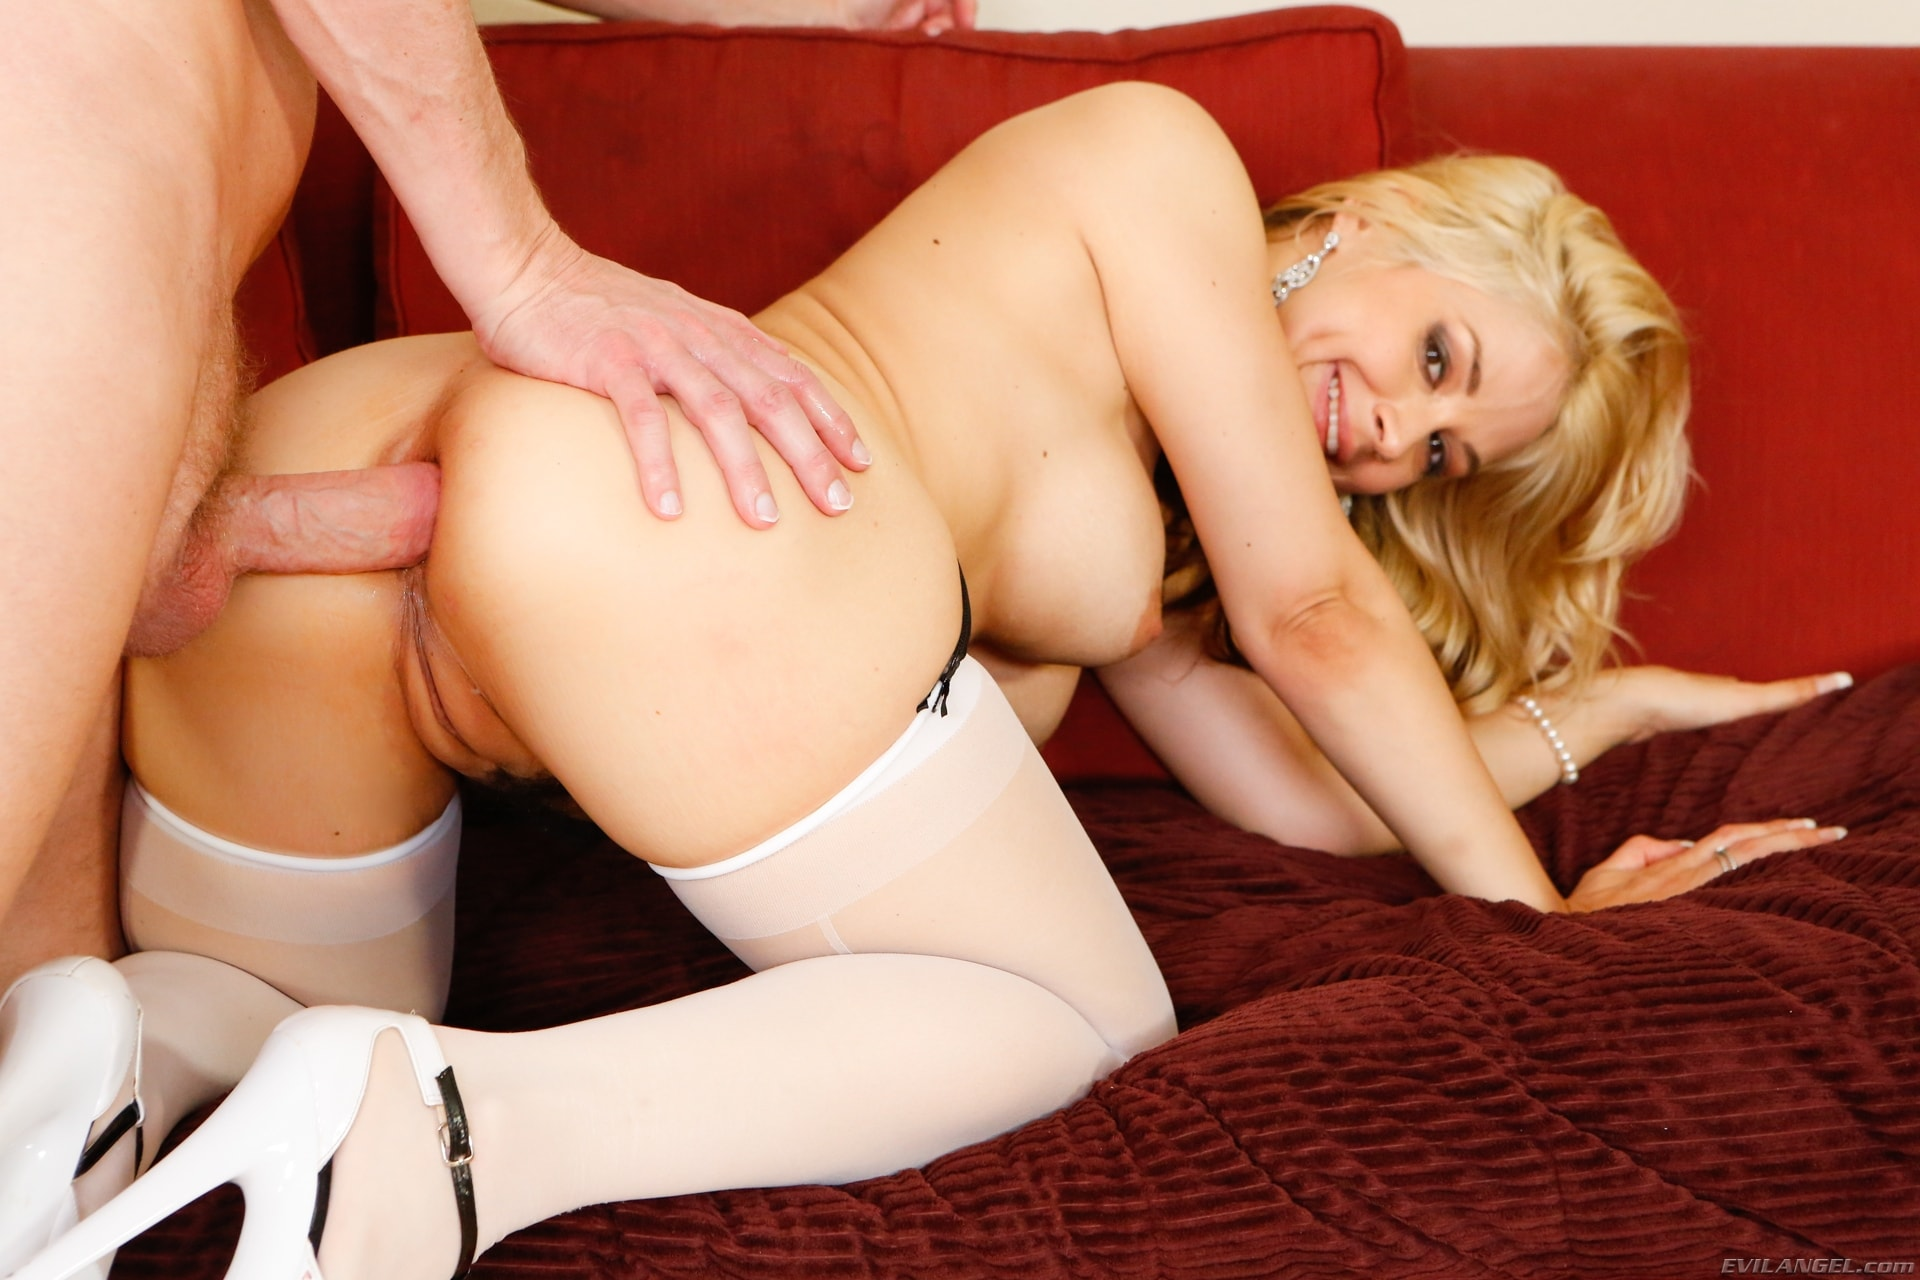 Evil Angel 'BAM Blonde Anal MILFs' starring Sarah Vandella (Photo 11)